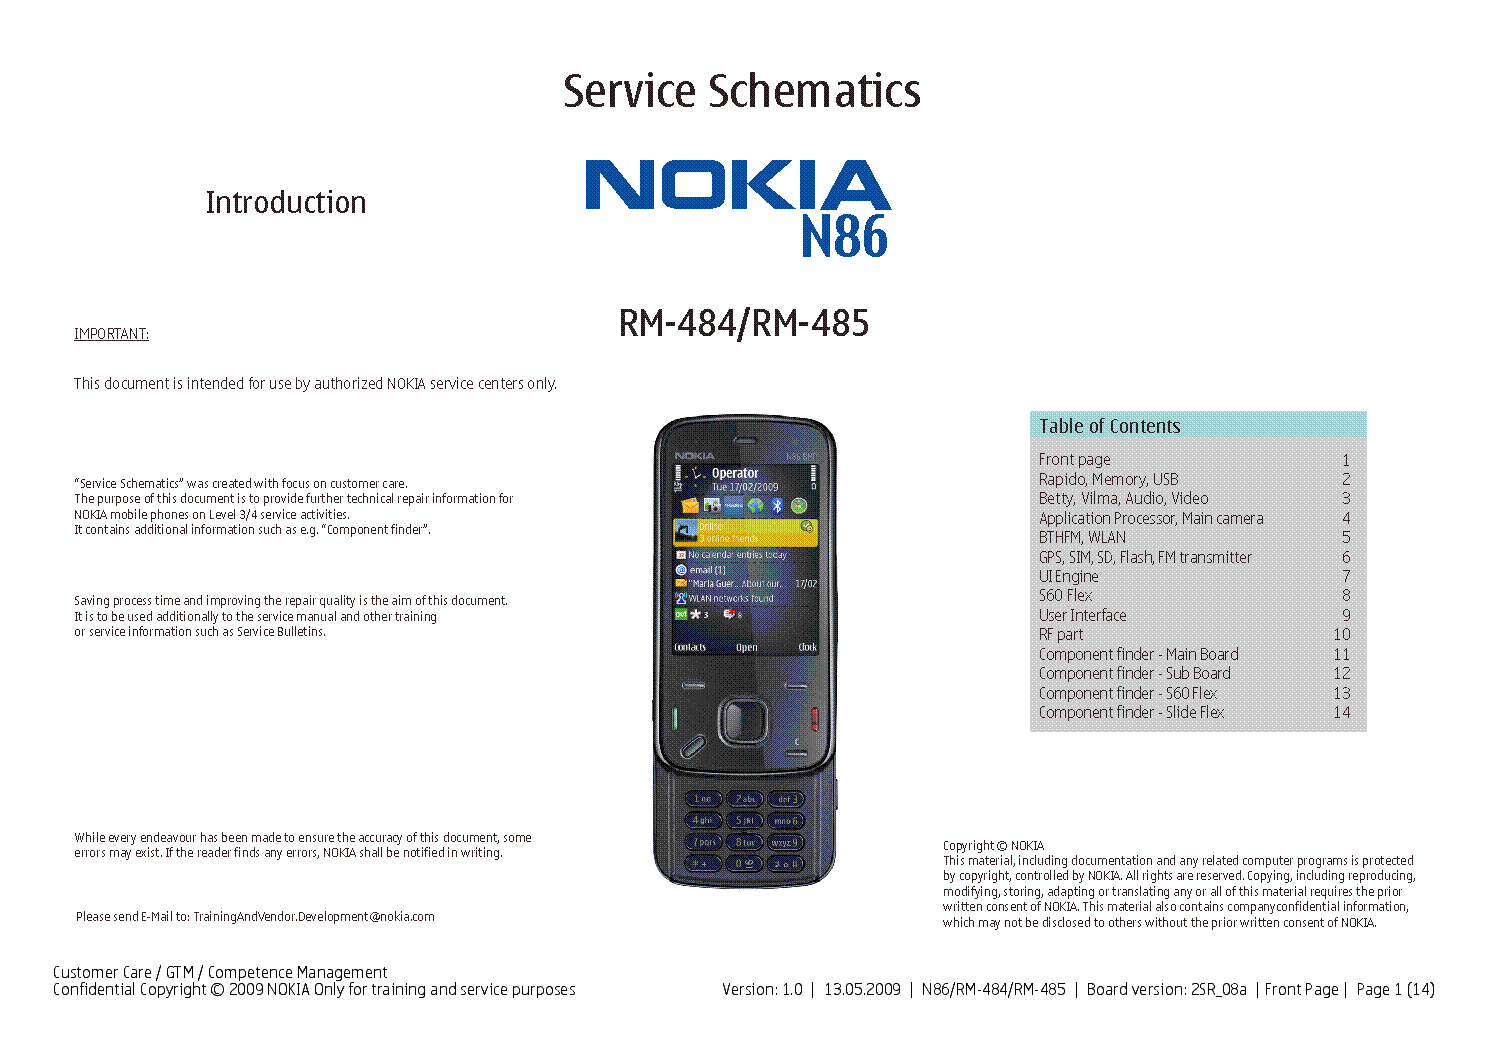 For nokia reader 2700c pdf